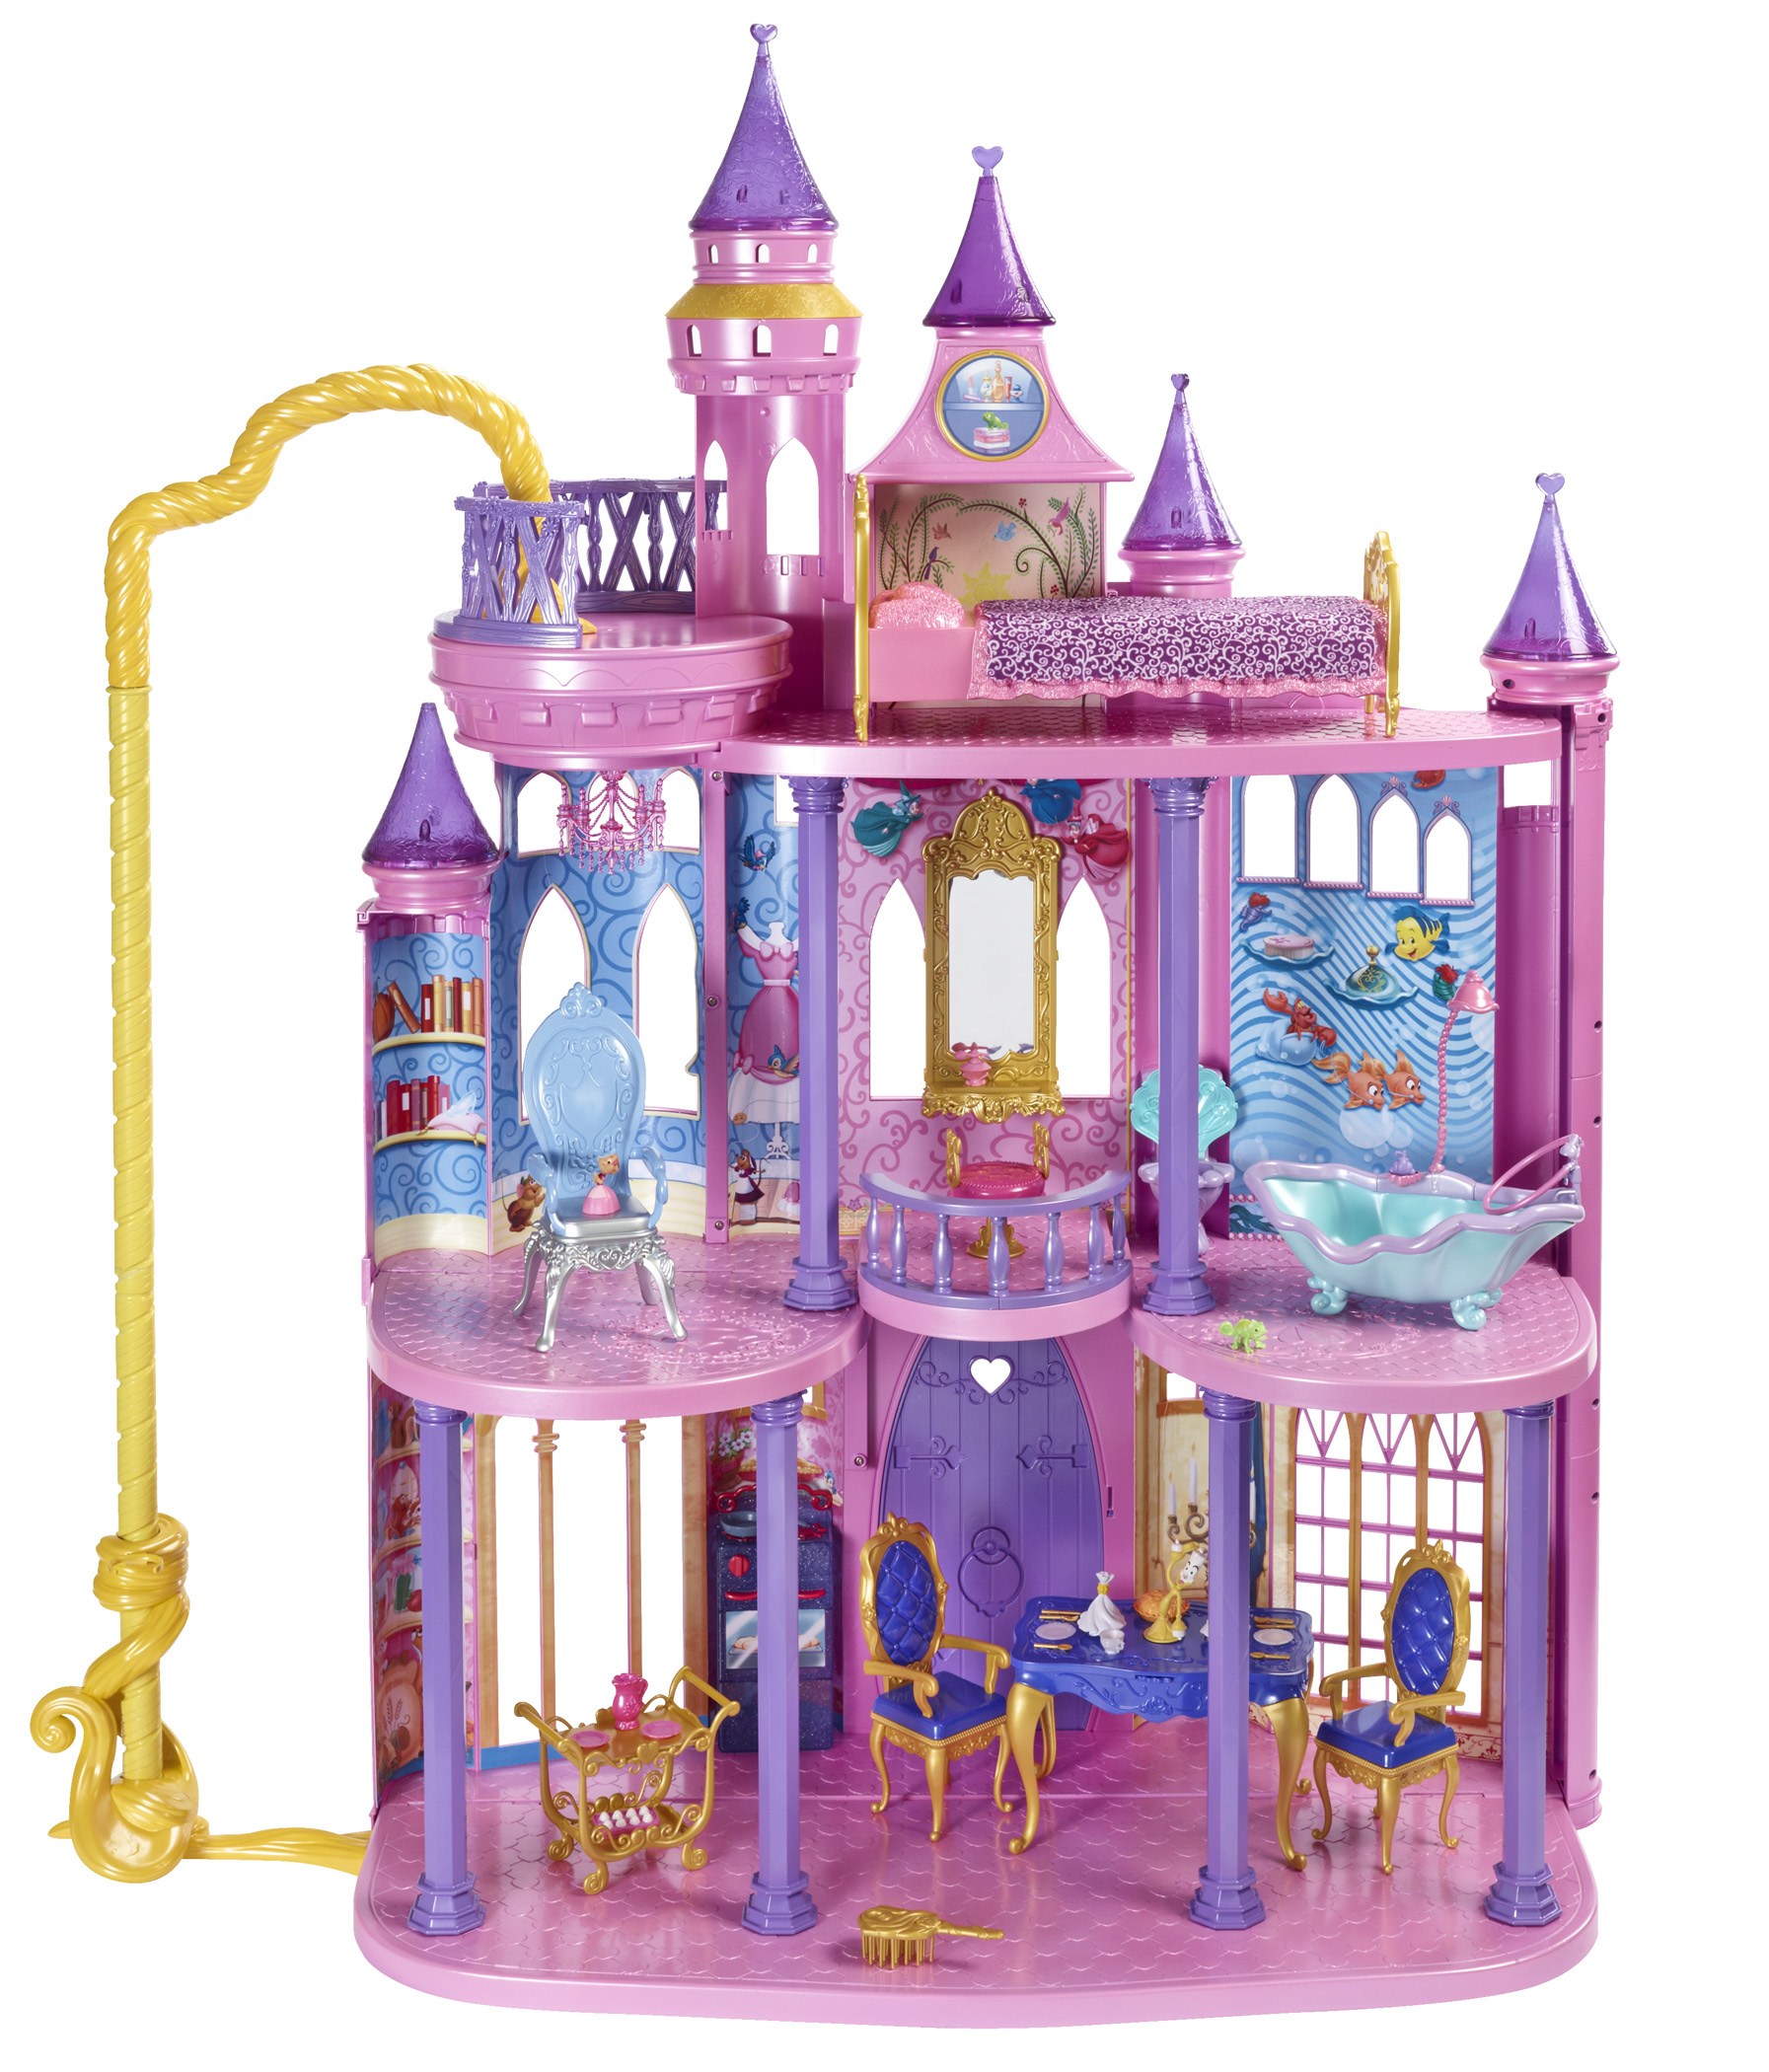 Disney Princess Toys : Stem is taking over the toy fair huffpost